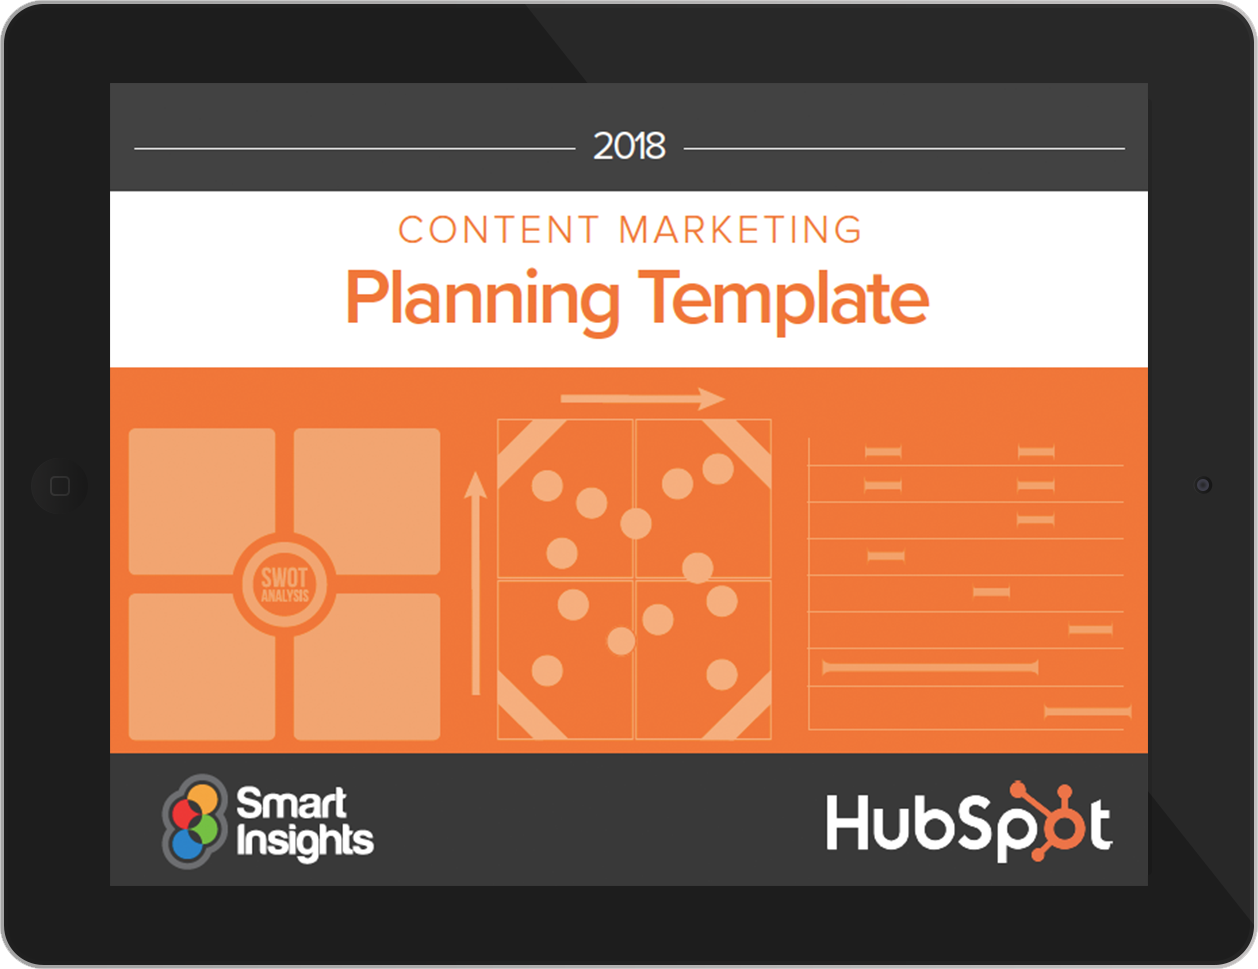 2018 Content Marketing Planning Template